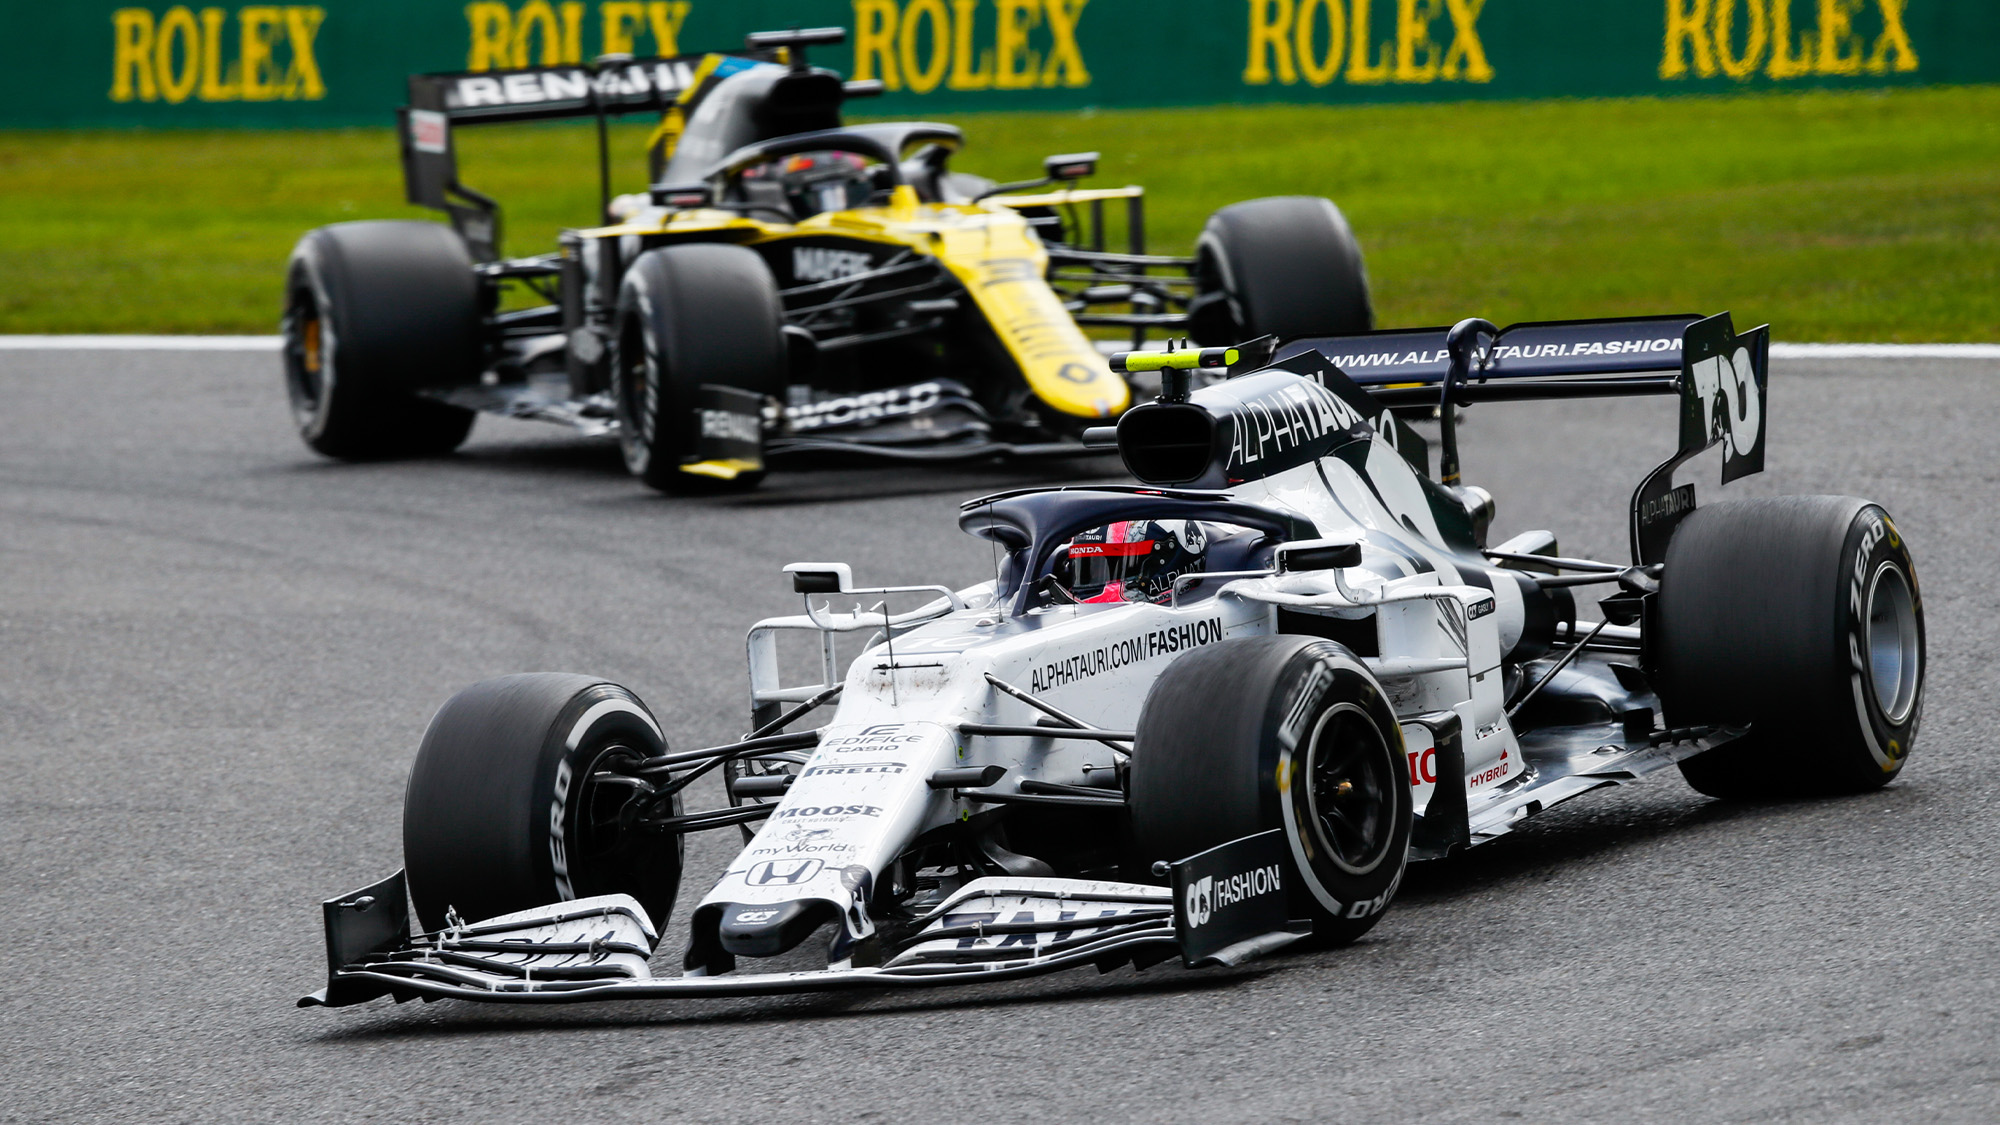 Pierre Gasly ahead of Kimi Raikkonen at Spa Francorchamps during the 2020 f1 Belgian Grand Prix